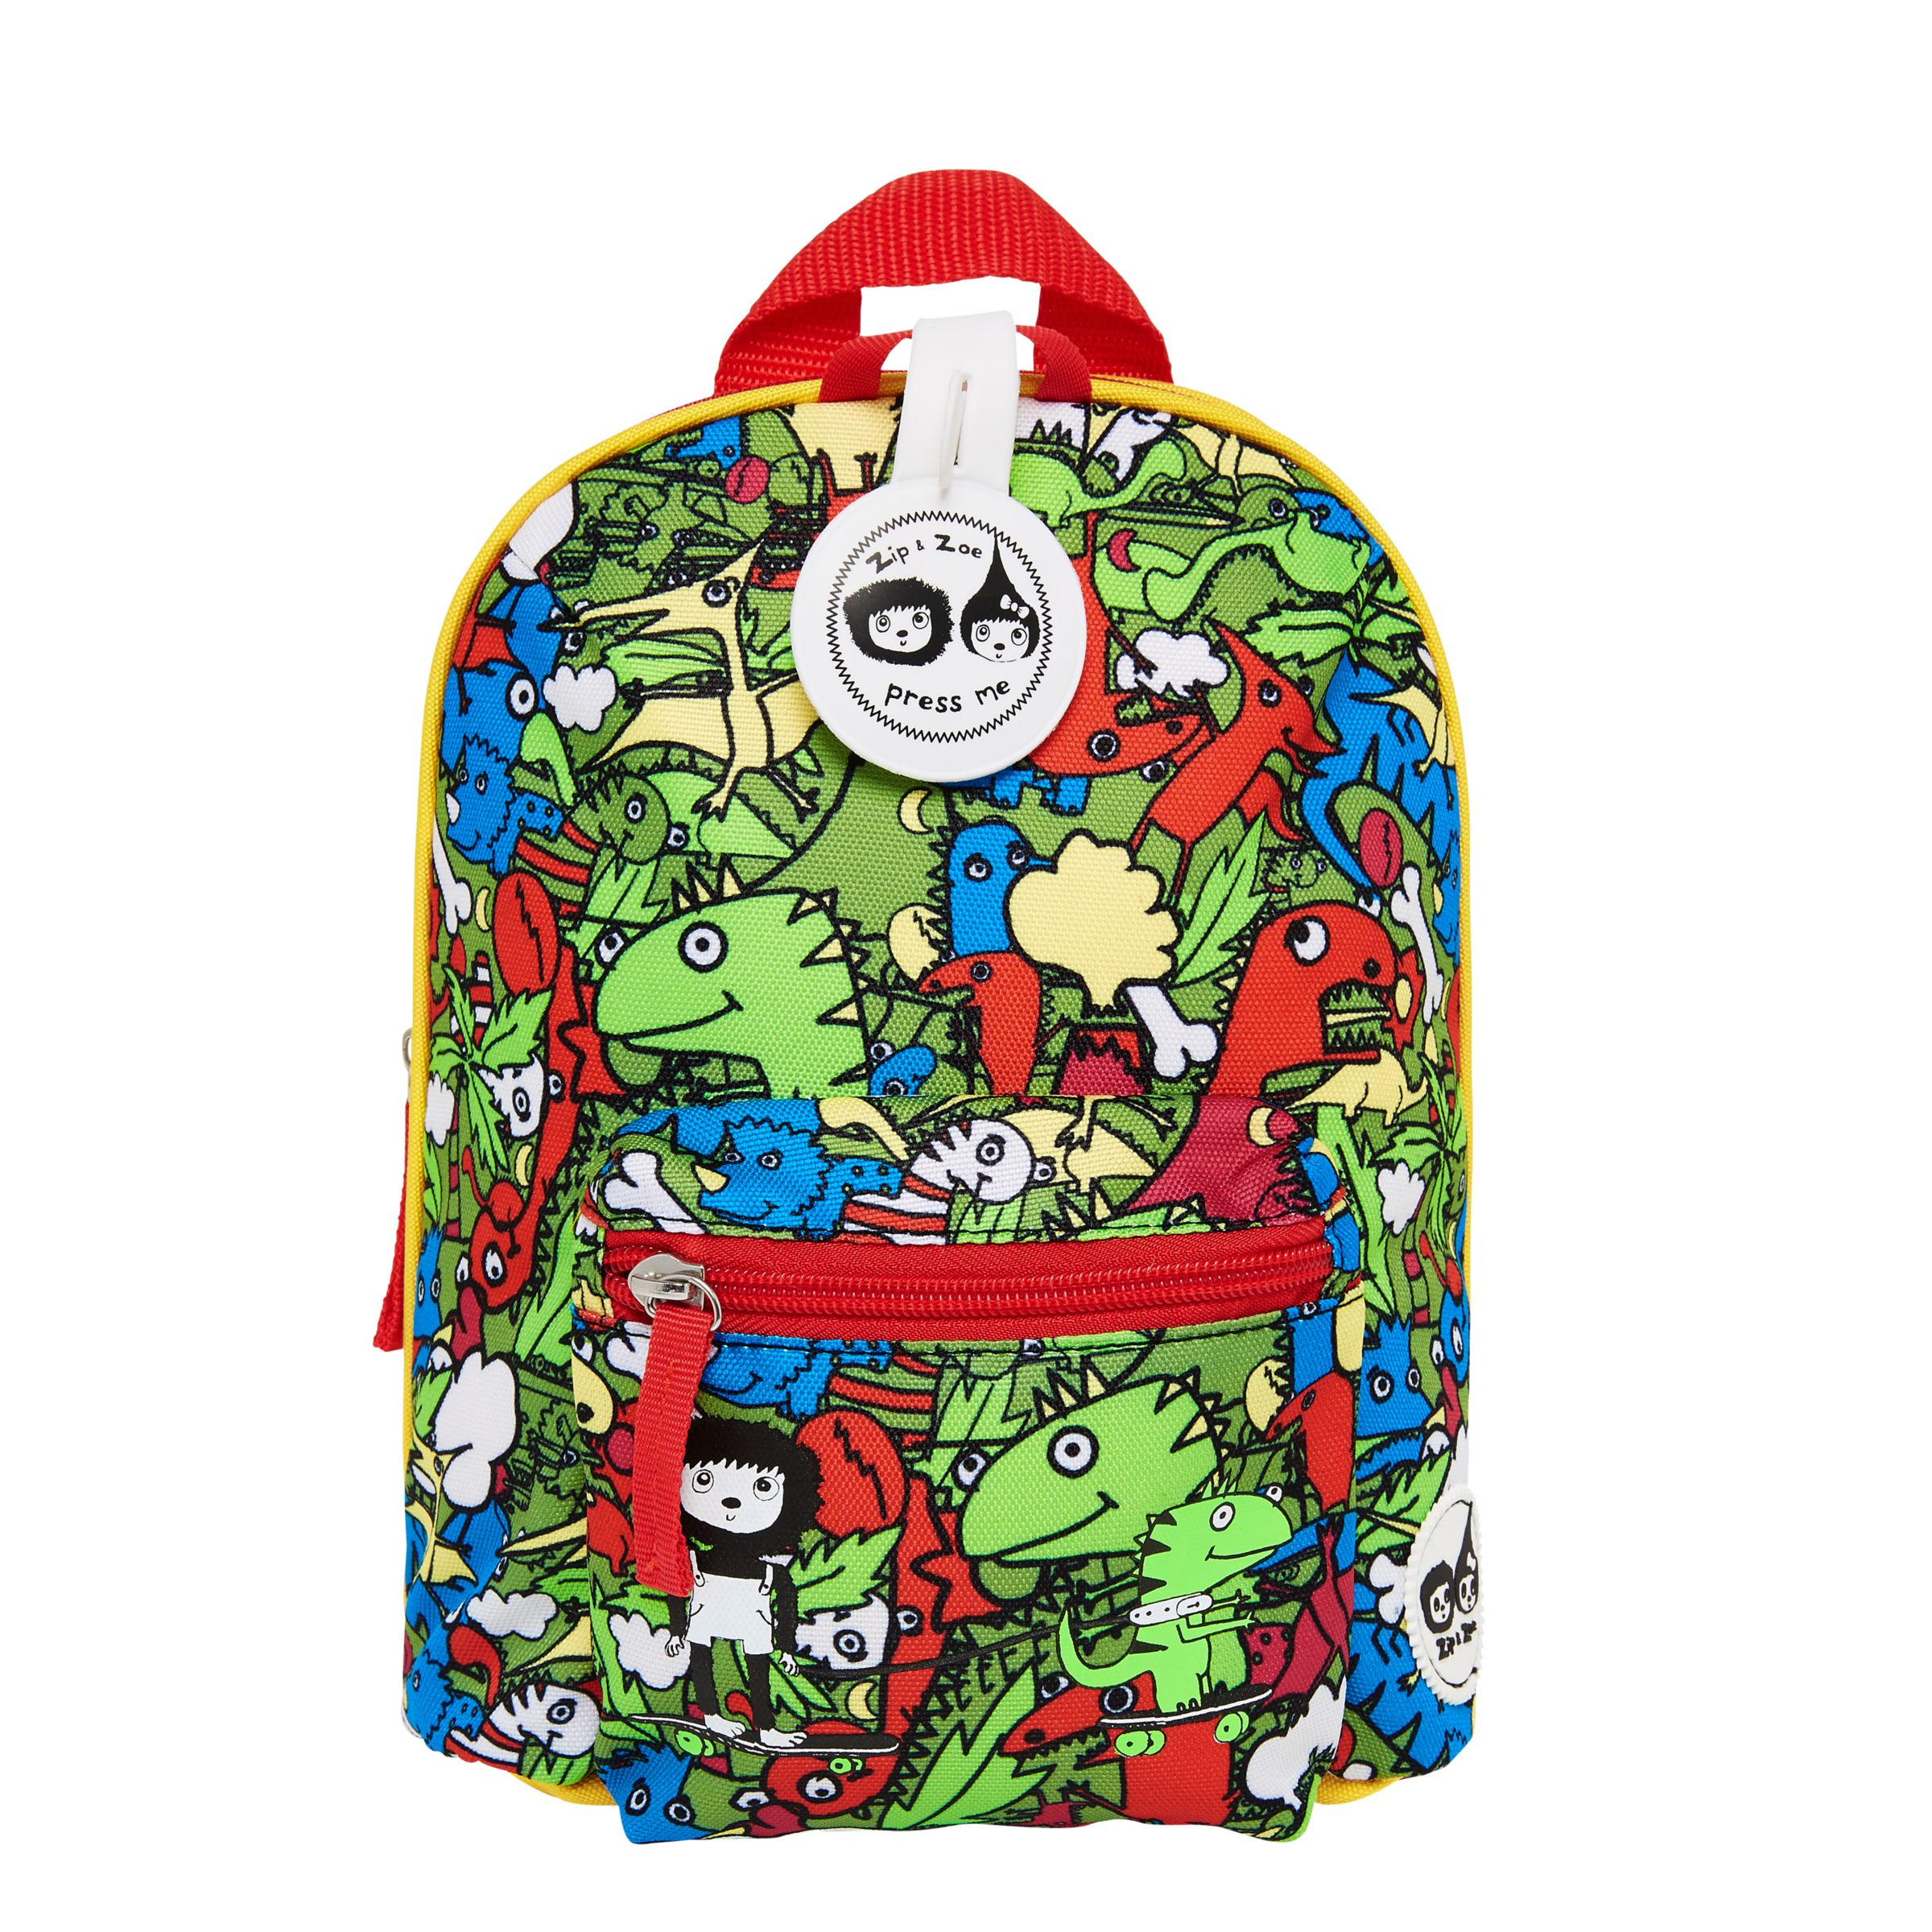 Babymel Babymel Zip & Zoe Mini Backpack with Reins and Safety Harness, Dino Multi